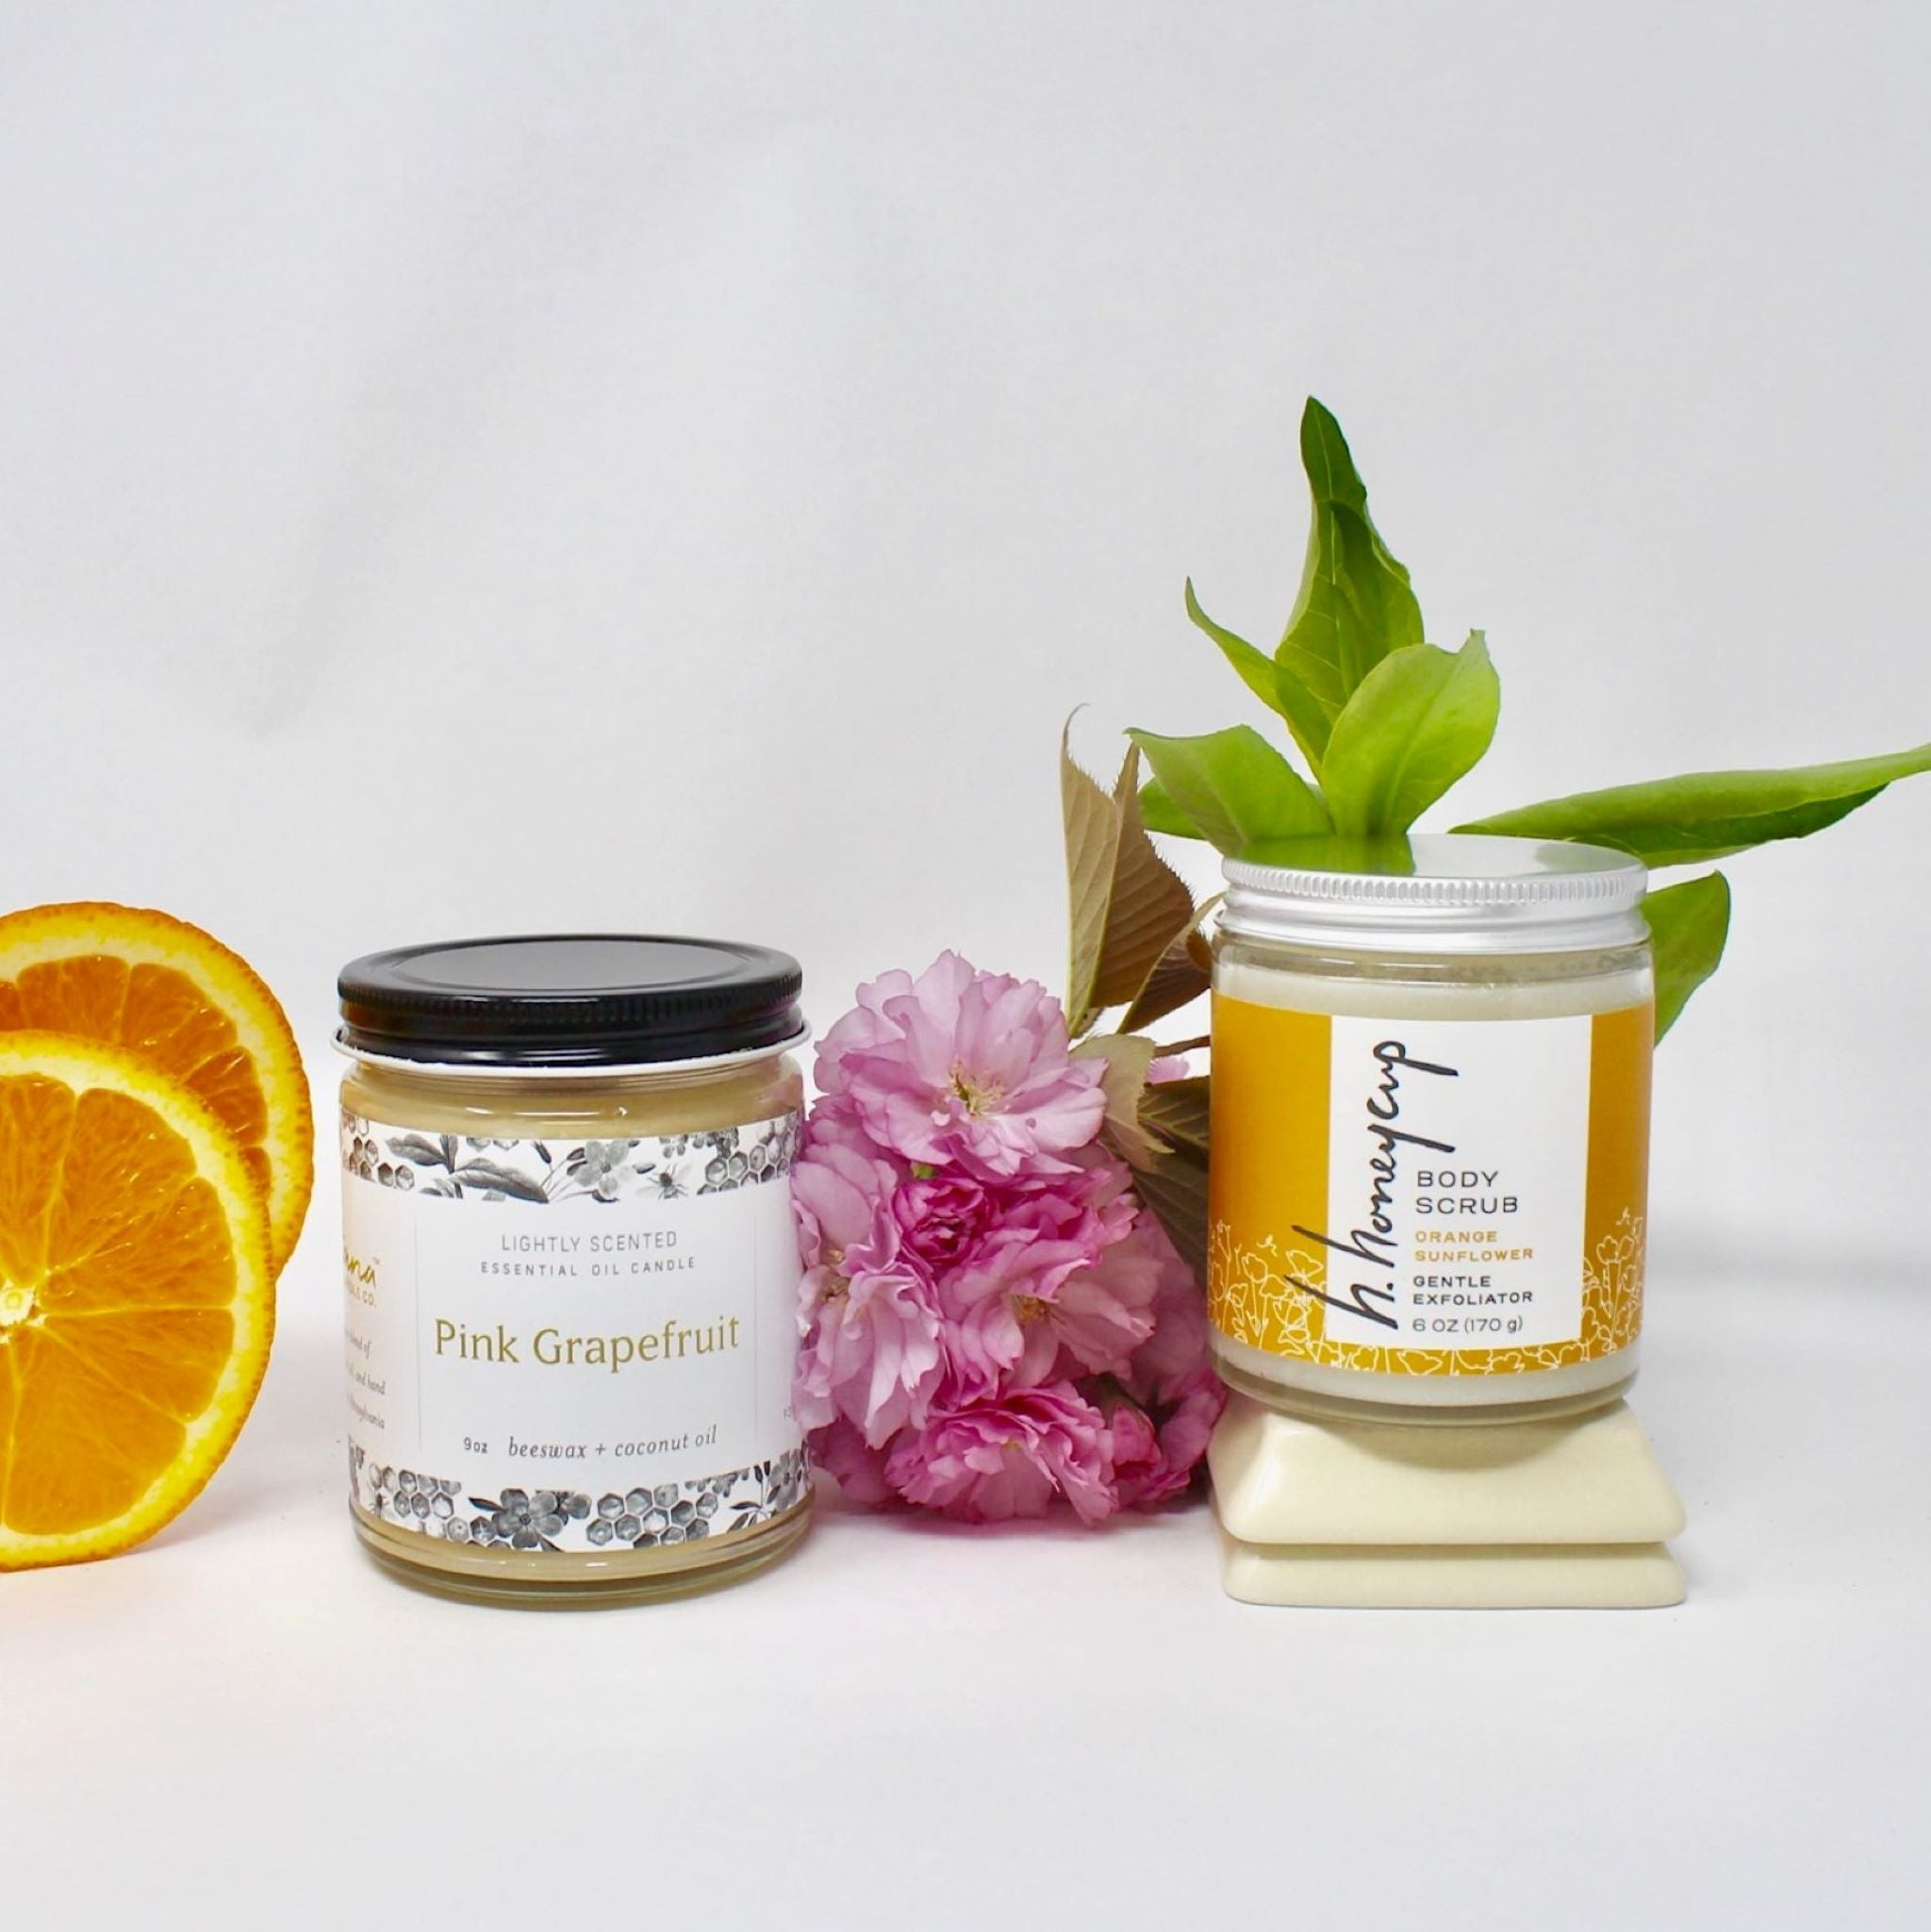 Citrus set with one 6 oz orange body scrub and one 9 oz pink grapefruit candle